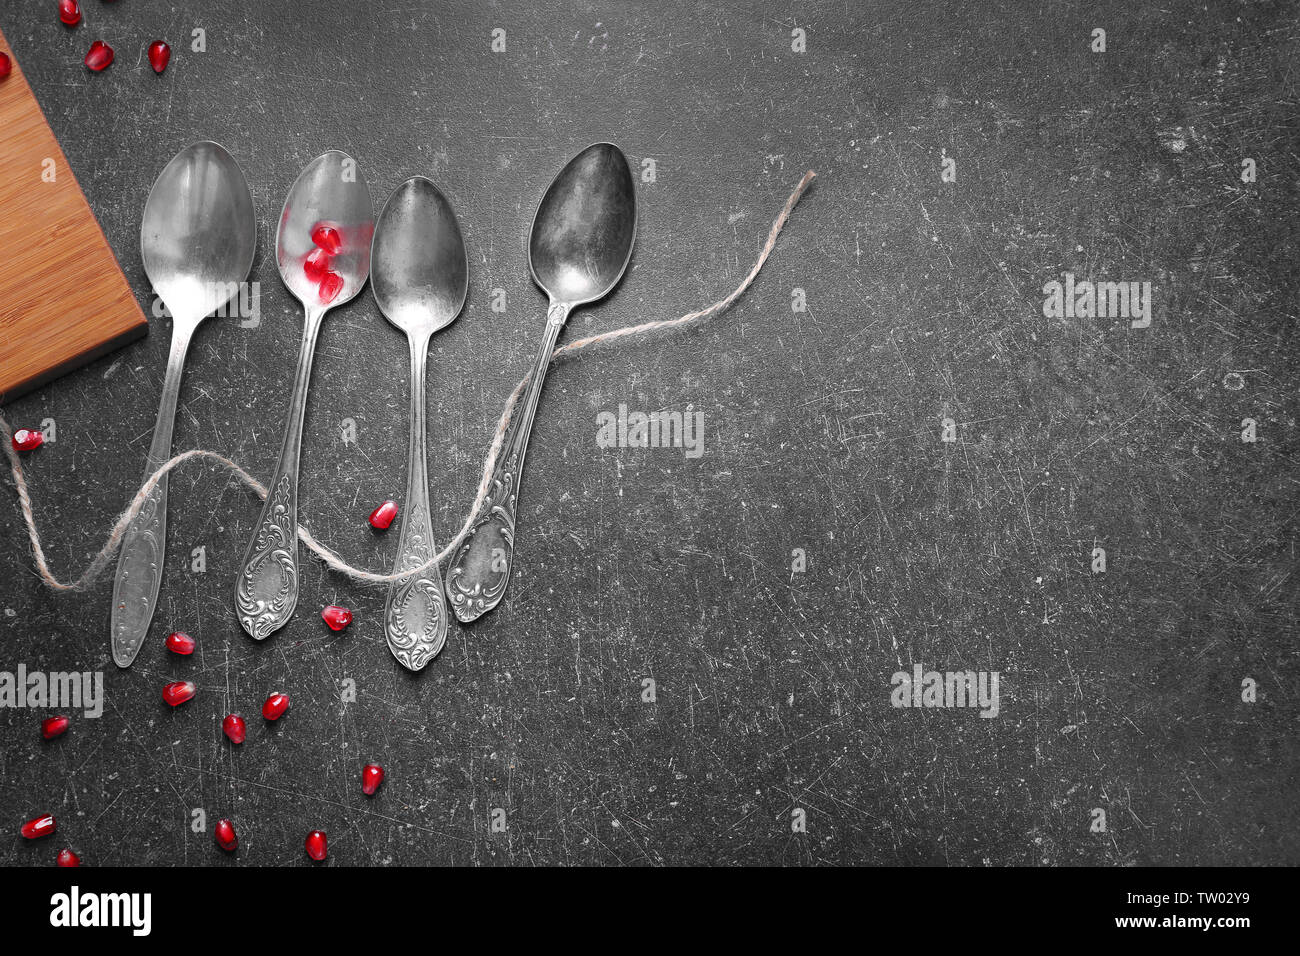 Cutlery set and garnet on gray table - Stock Image